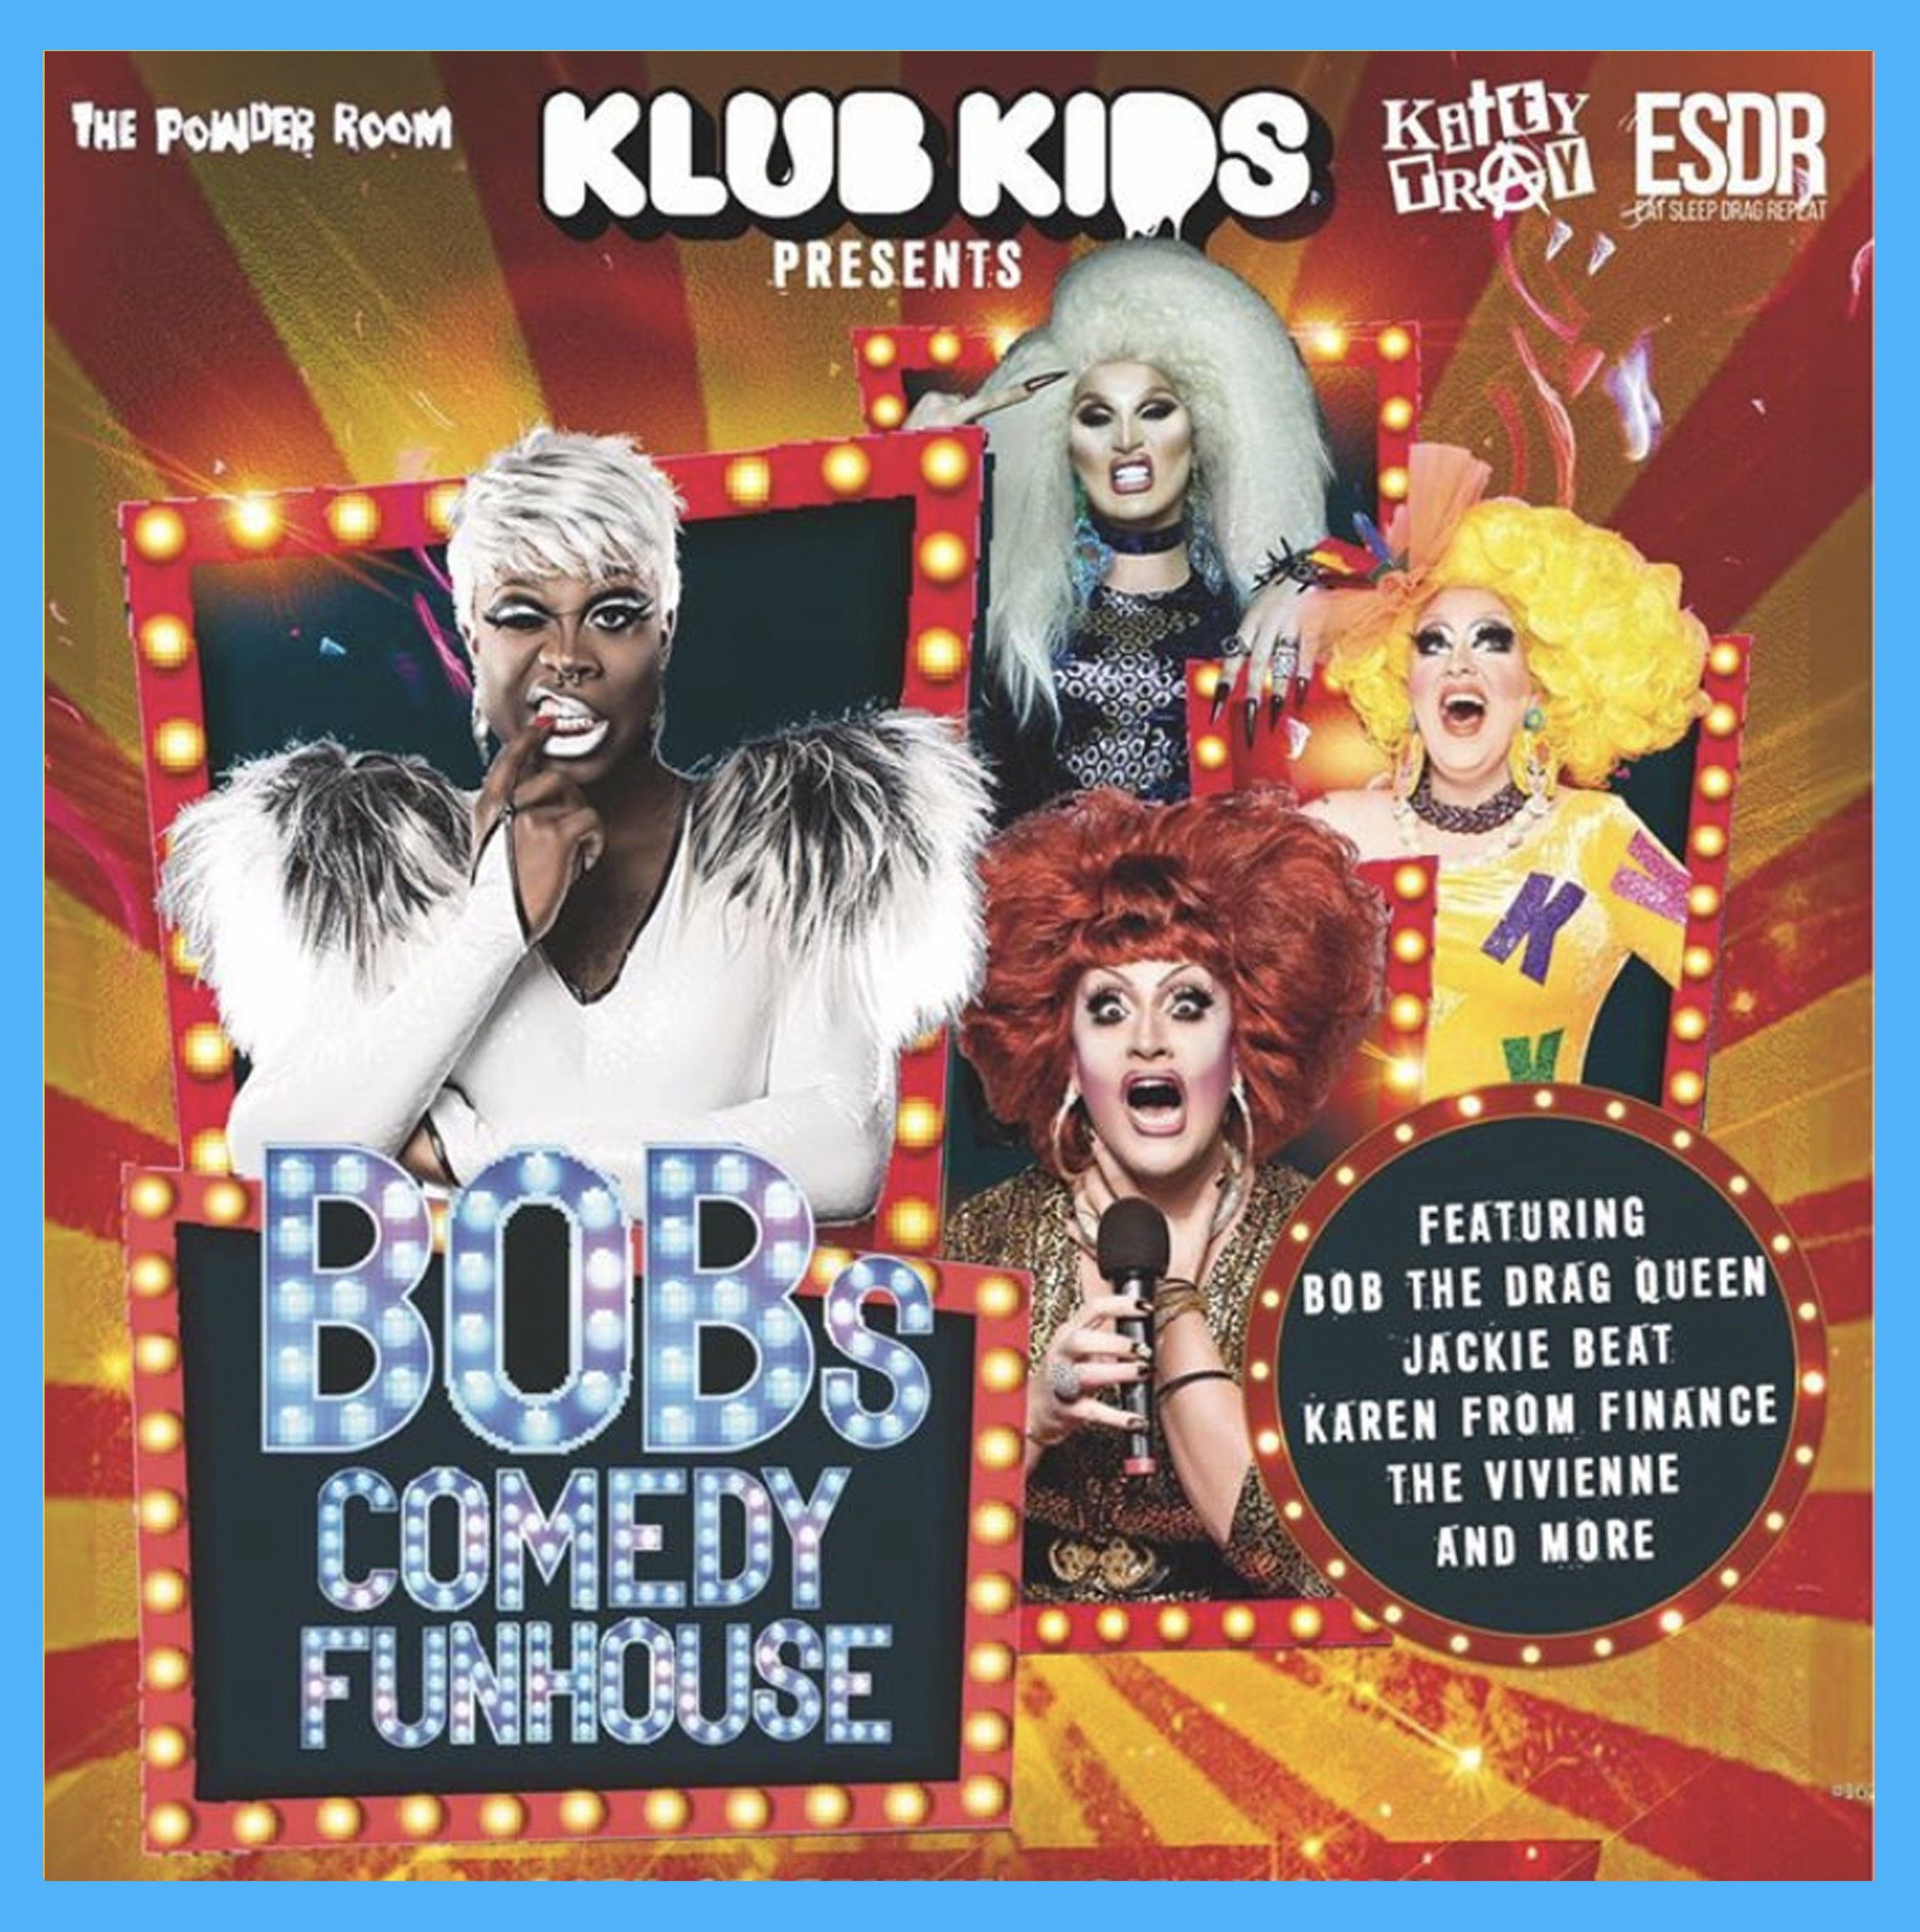 Manchester, UK - October 5th, 2019, 9:00PMCruz 101A comedy camp special show hosted and performances from Bob The Drag Queen, plus special performances from comedy legend Jackie Beat, Karen from Finance and Liverpool drag legend The Vivienne.Expect a show full of side splitting humour and some funhouse klub kids drama.